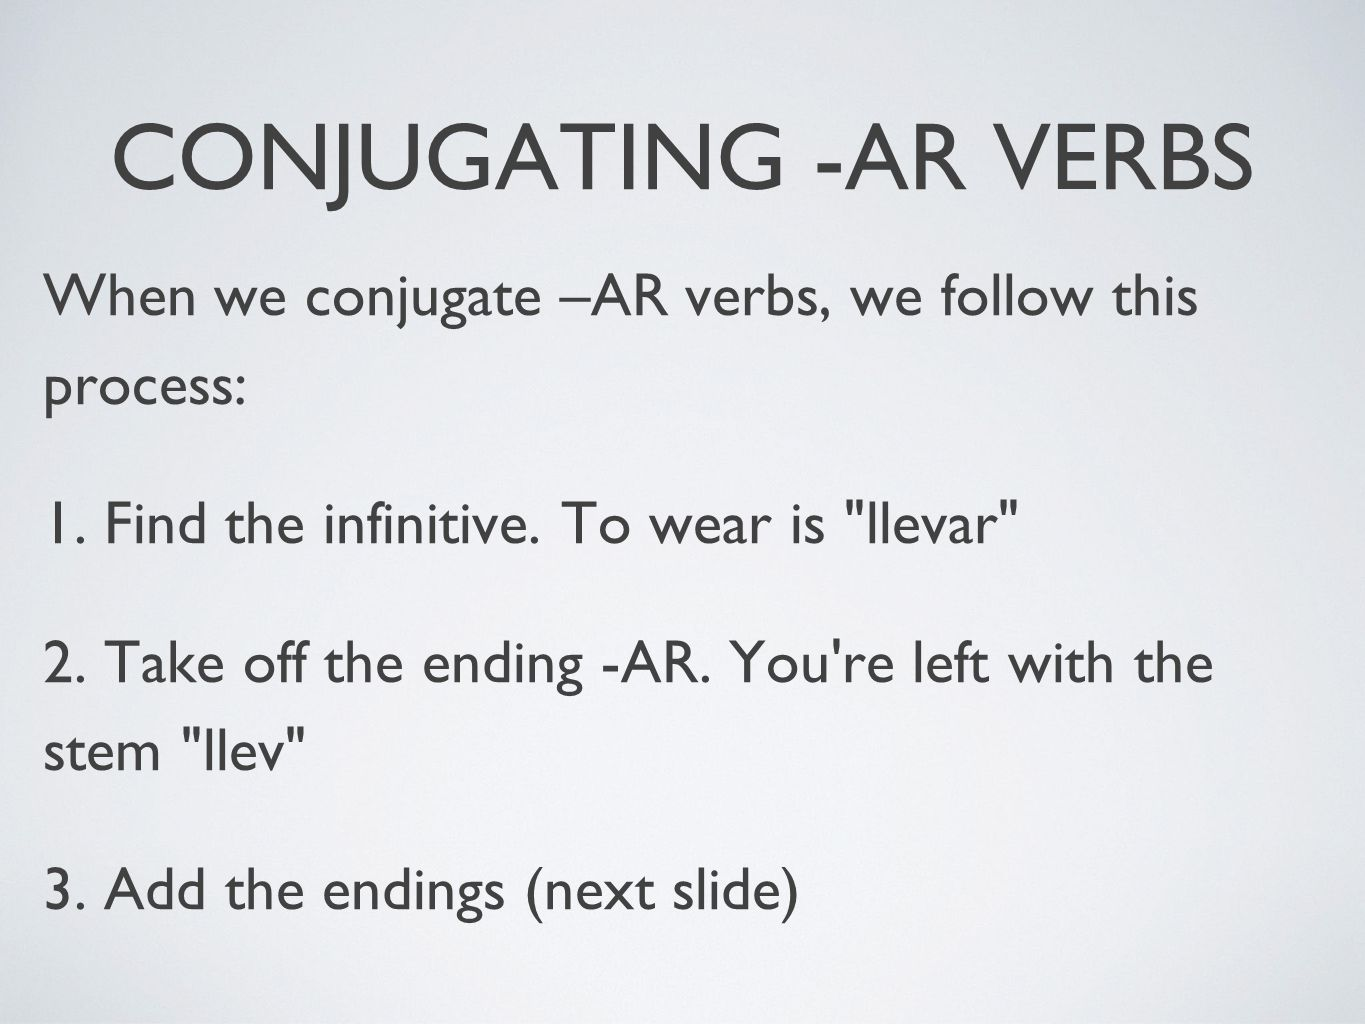 CONJUGATING -AR VERBS When we conjugate –AR verbs, we follow this process: 1. Find the infinitive. To wear is llevar